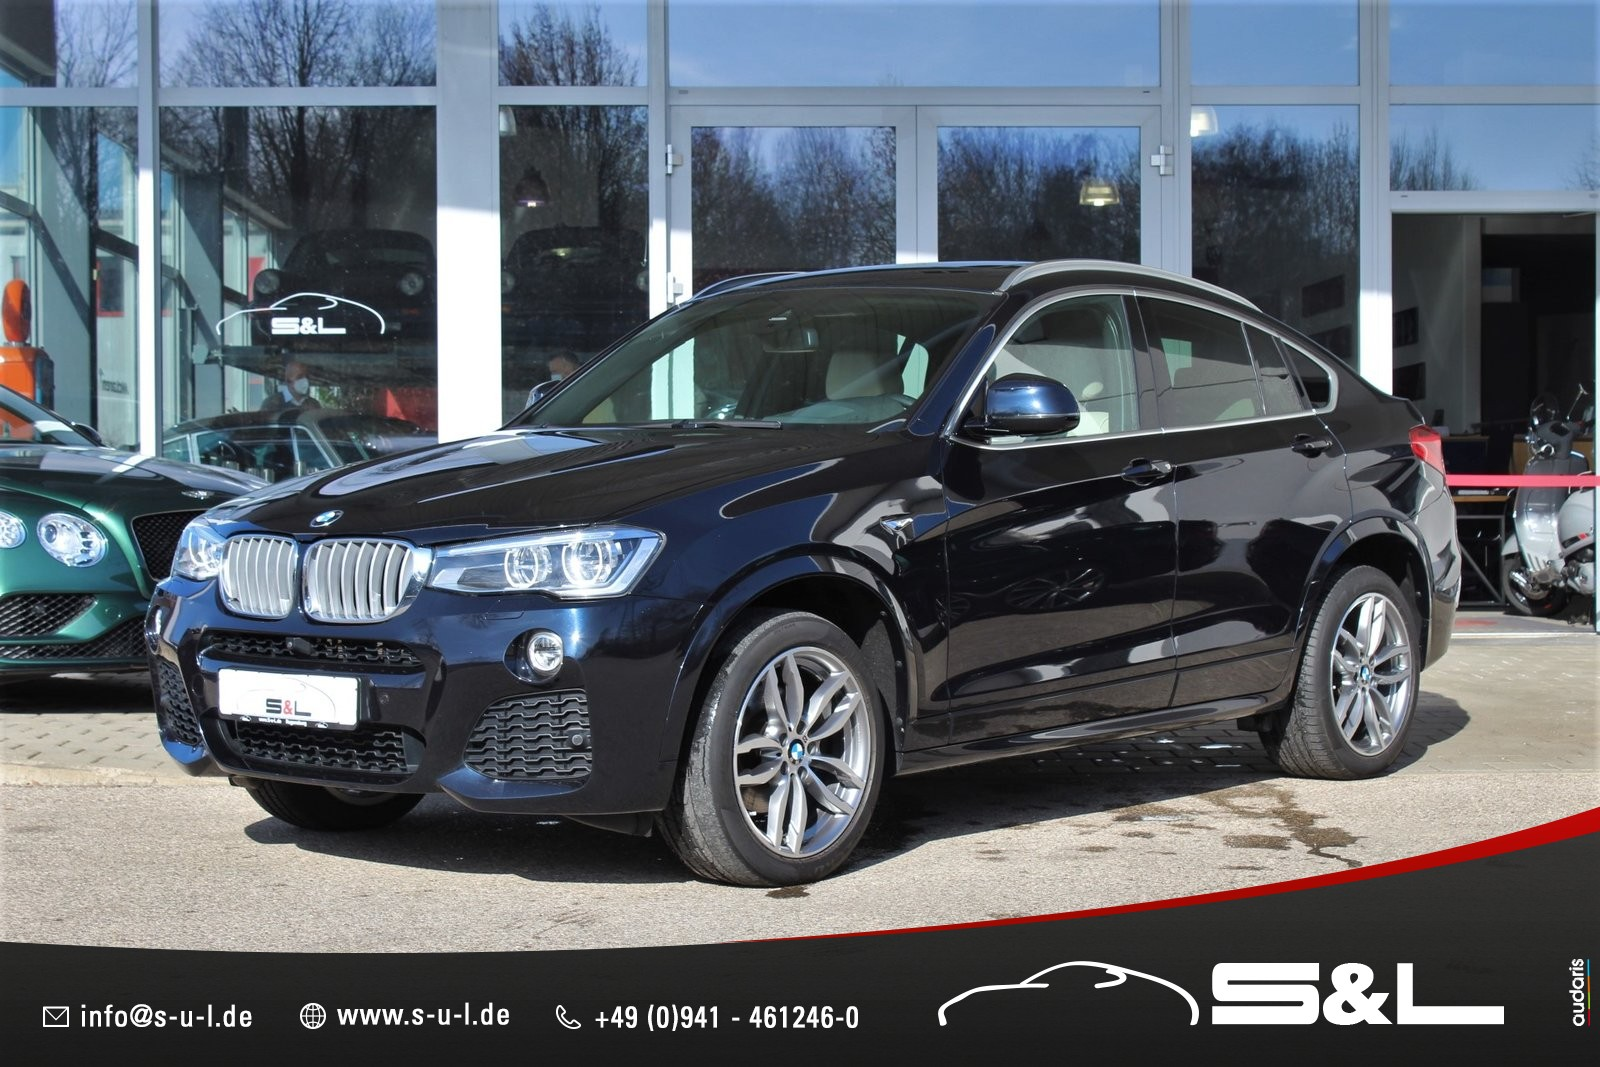 BMW X4 xDrive35d/ Connected/ M-Sport/ Harman-Kardon, Jahr 2015, Diesel